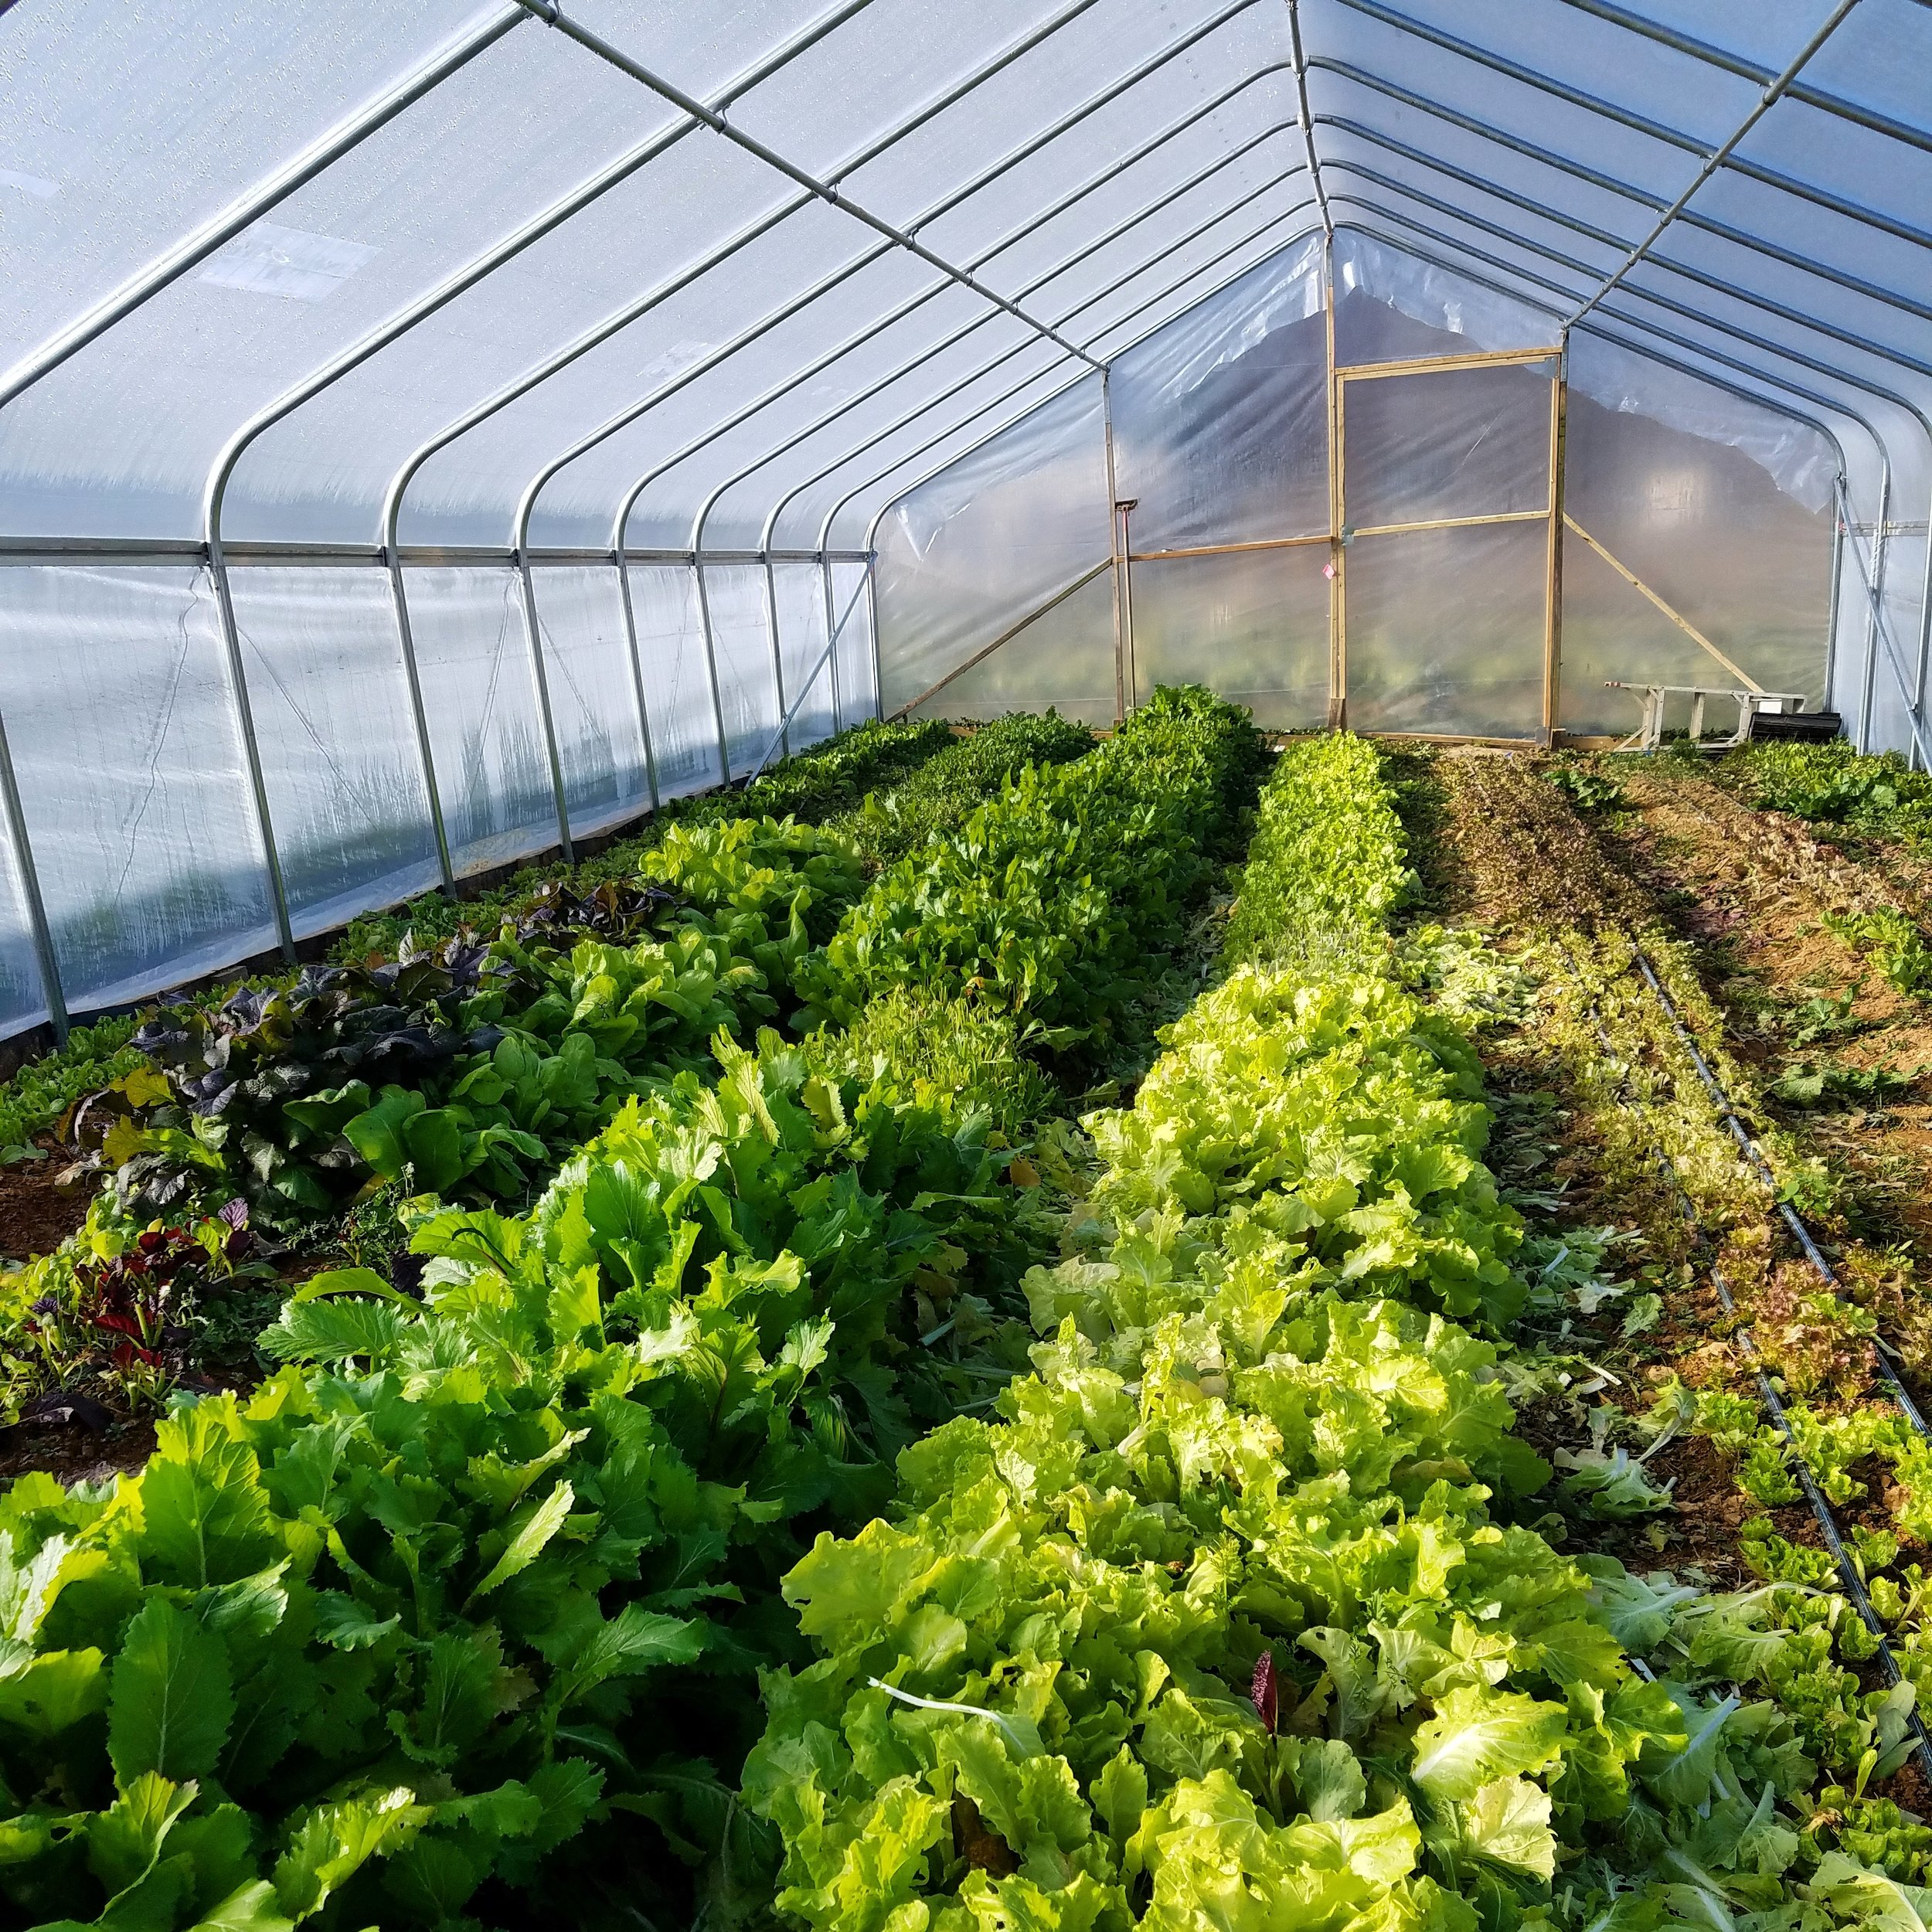 One of our high tunnels full of salad greens!